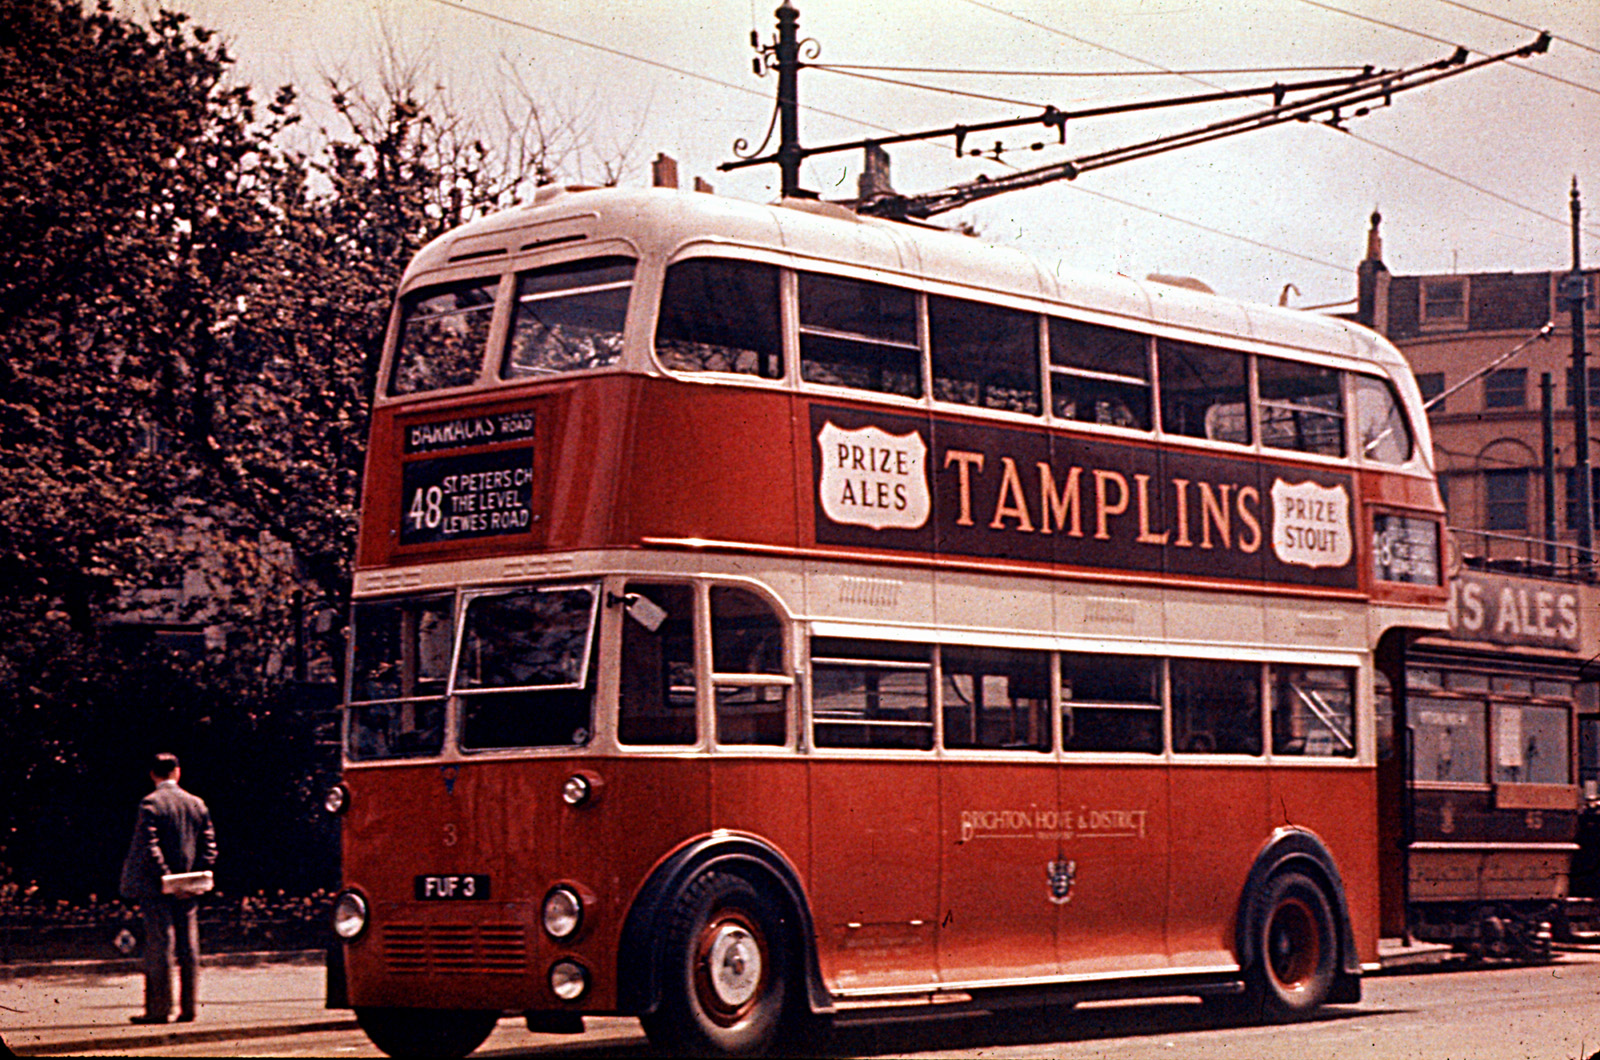 1938 London FUF3-Brighton BUT